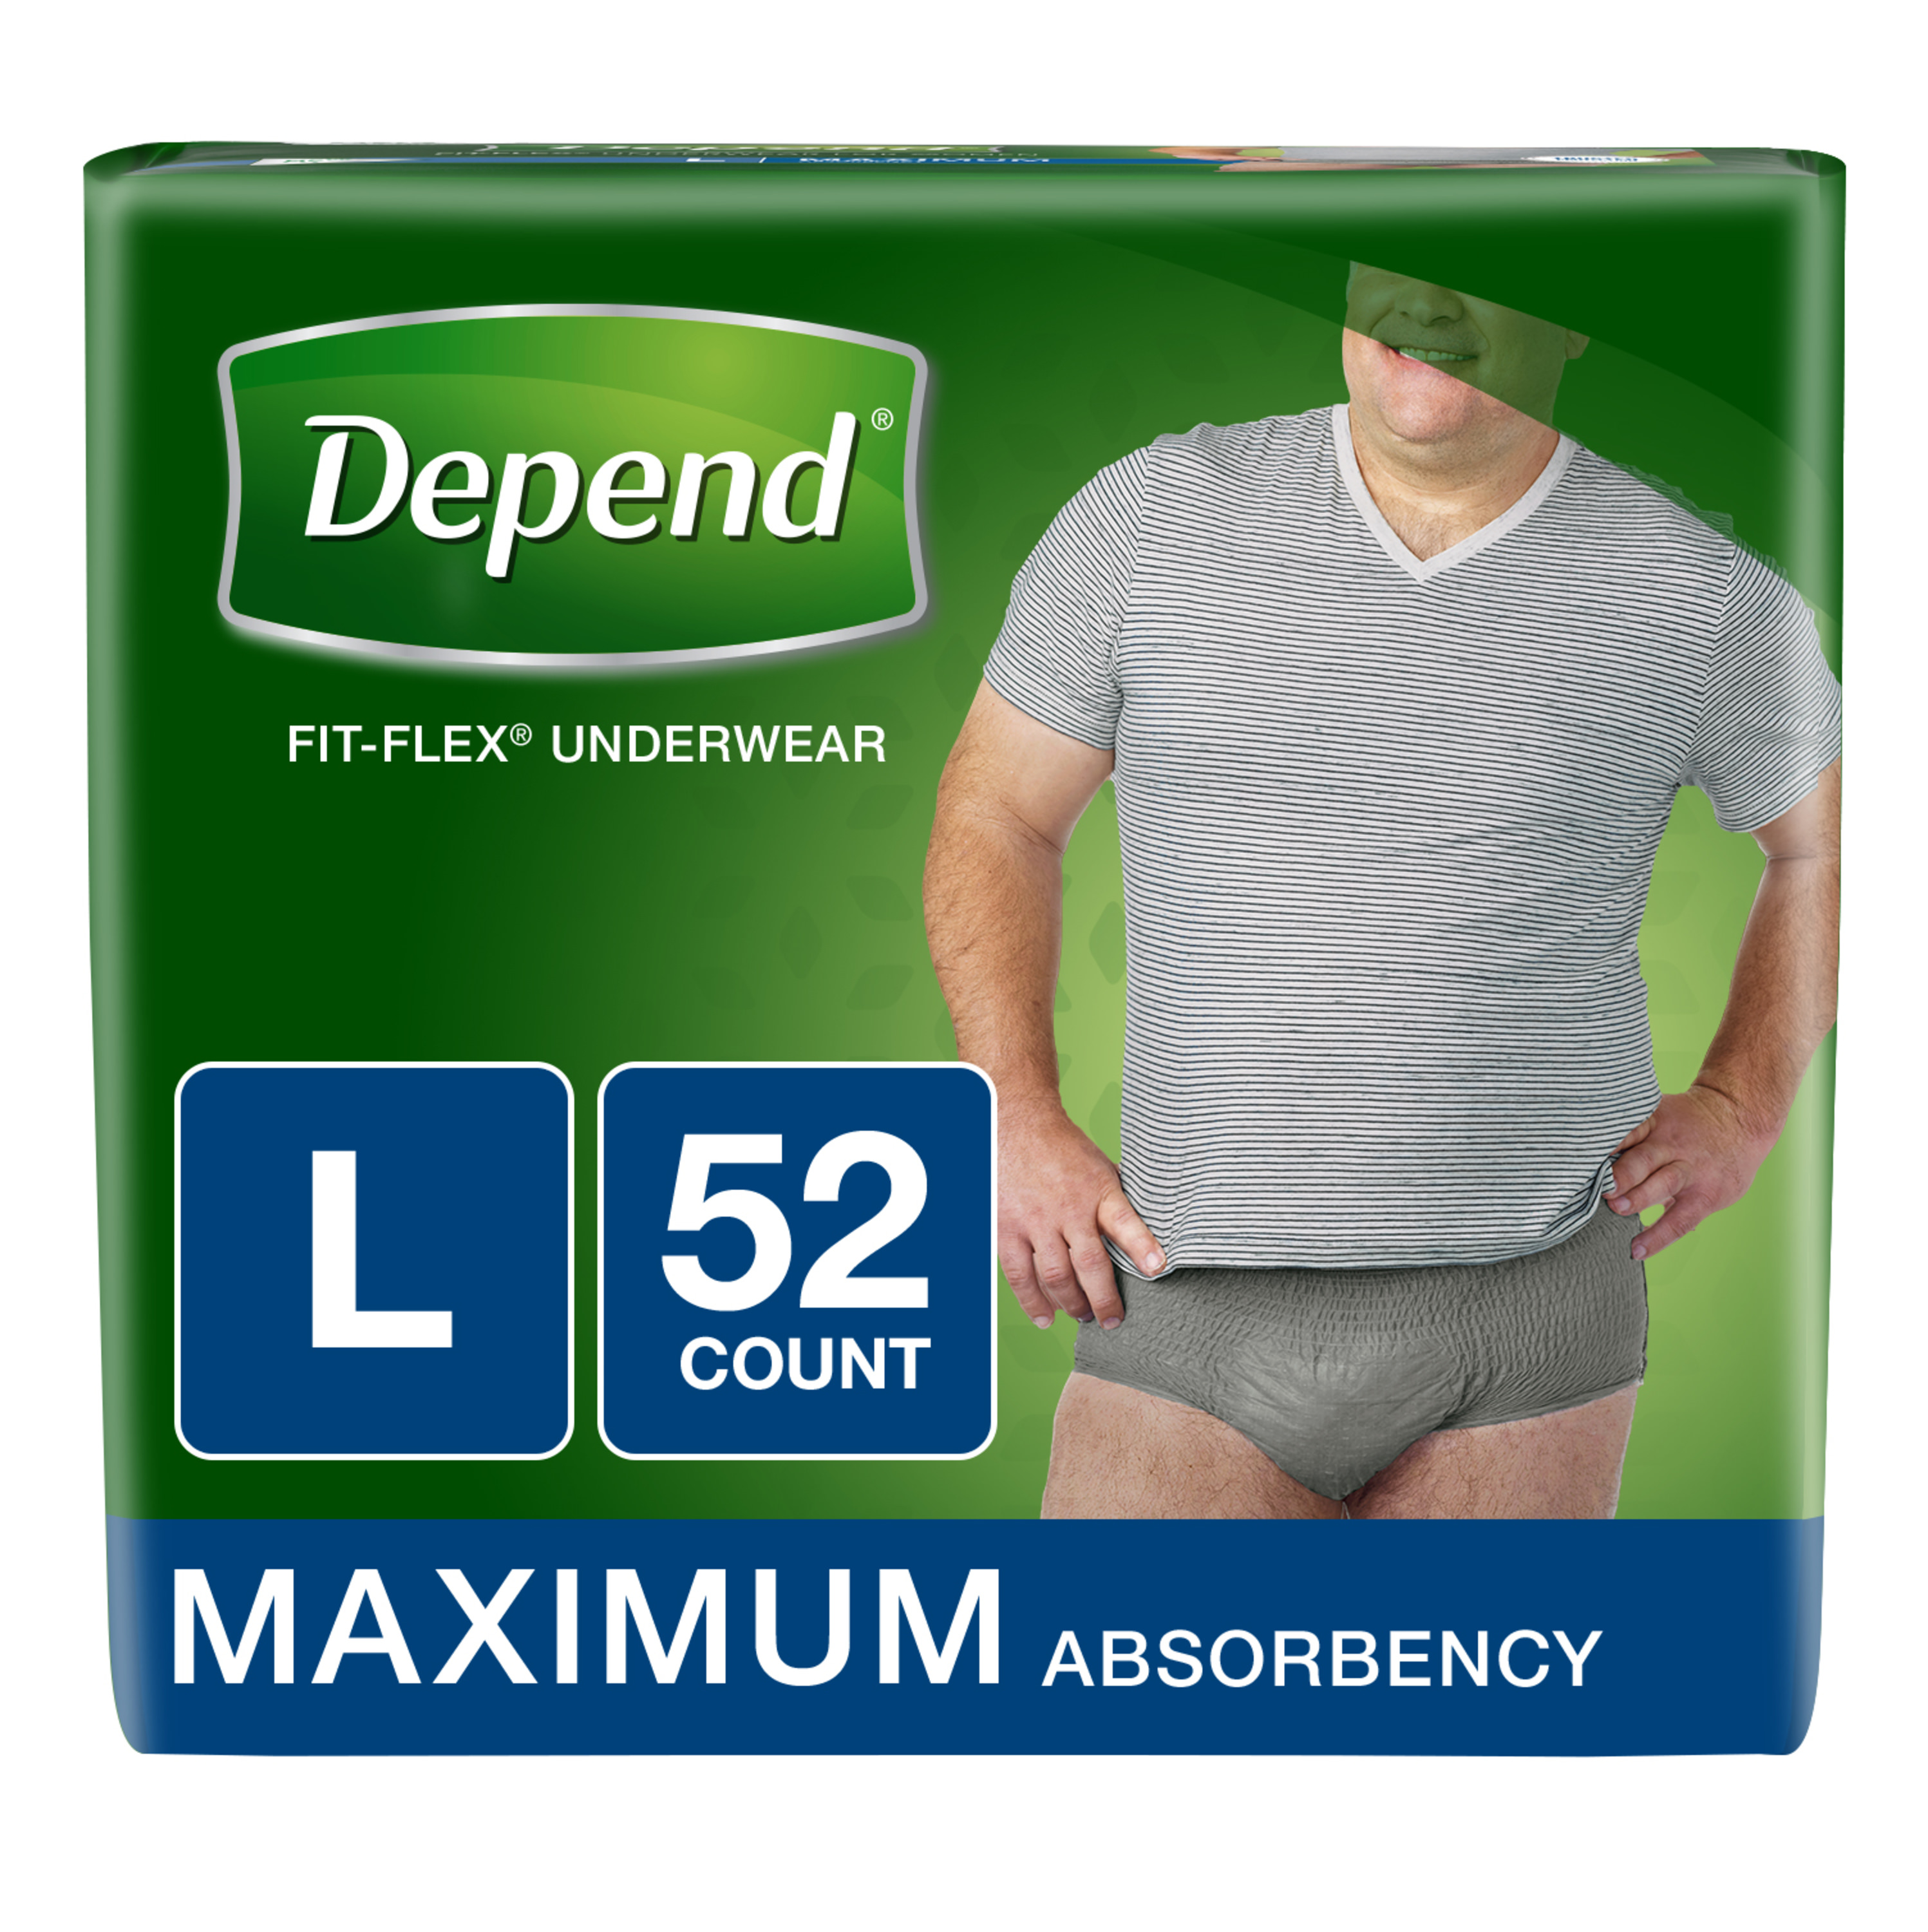 Depend FIT-FLEX Incontinence Underwear for Men, Maximum Absorbency, L, Gray 52 ct